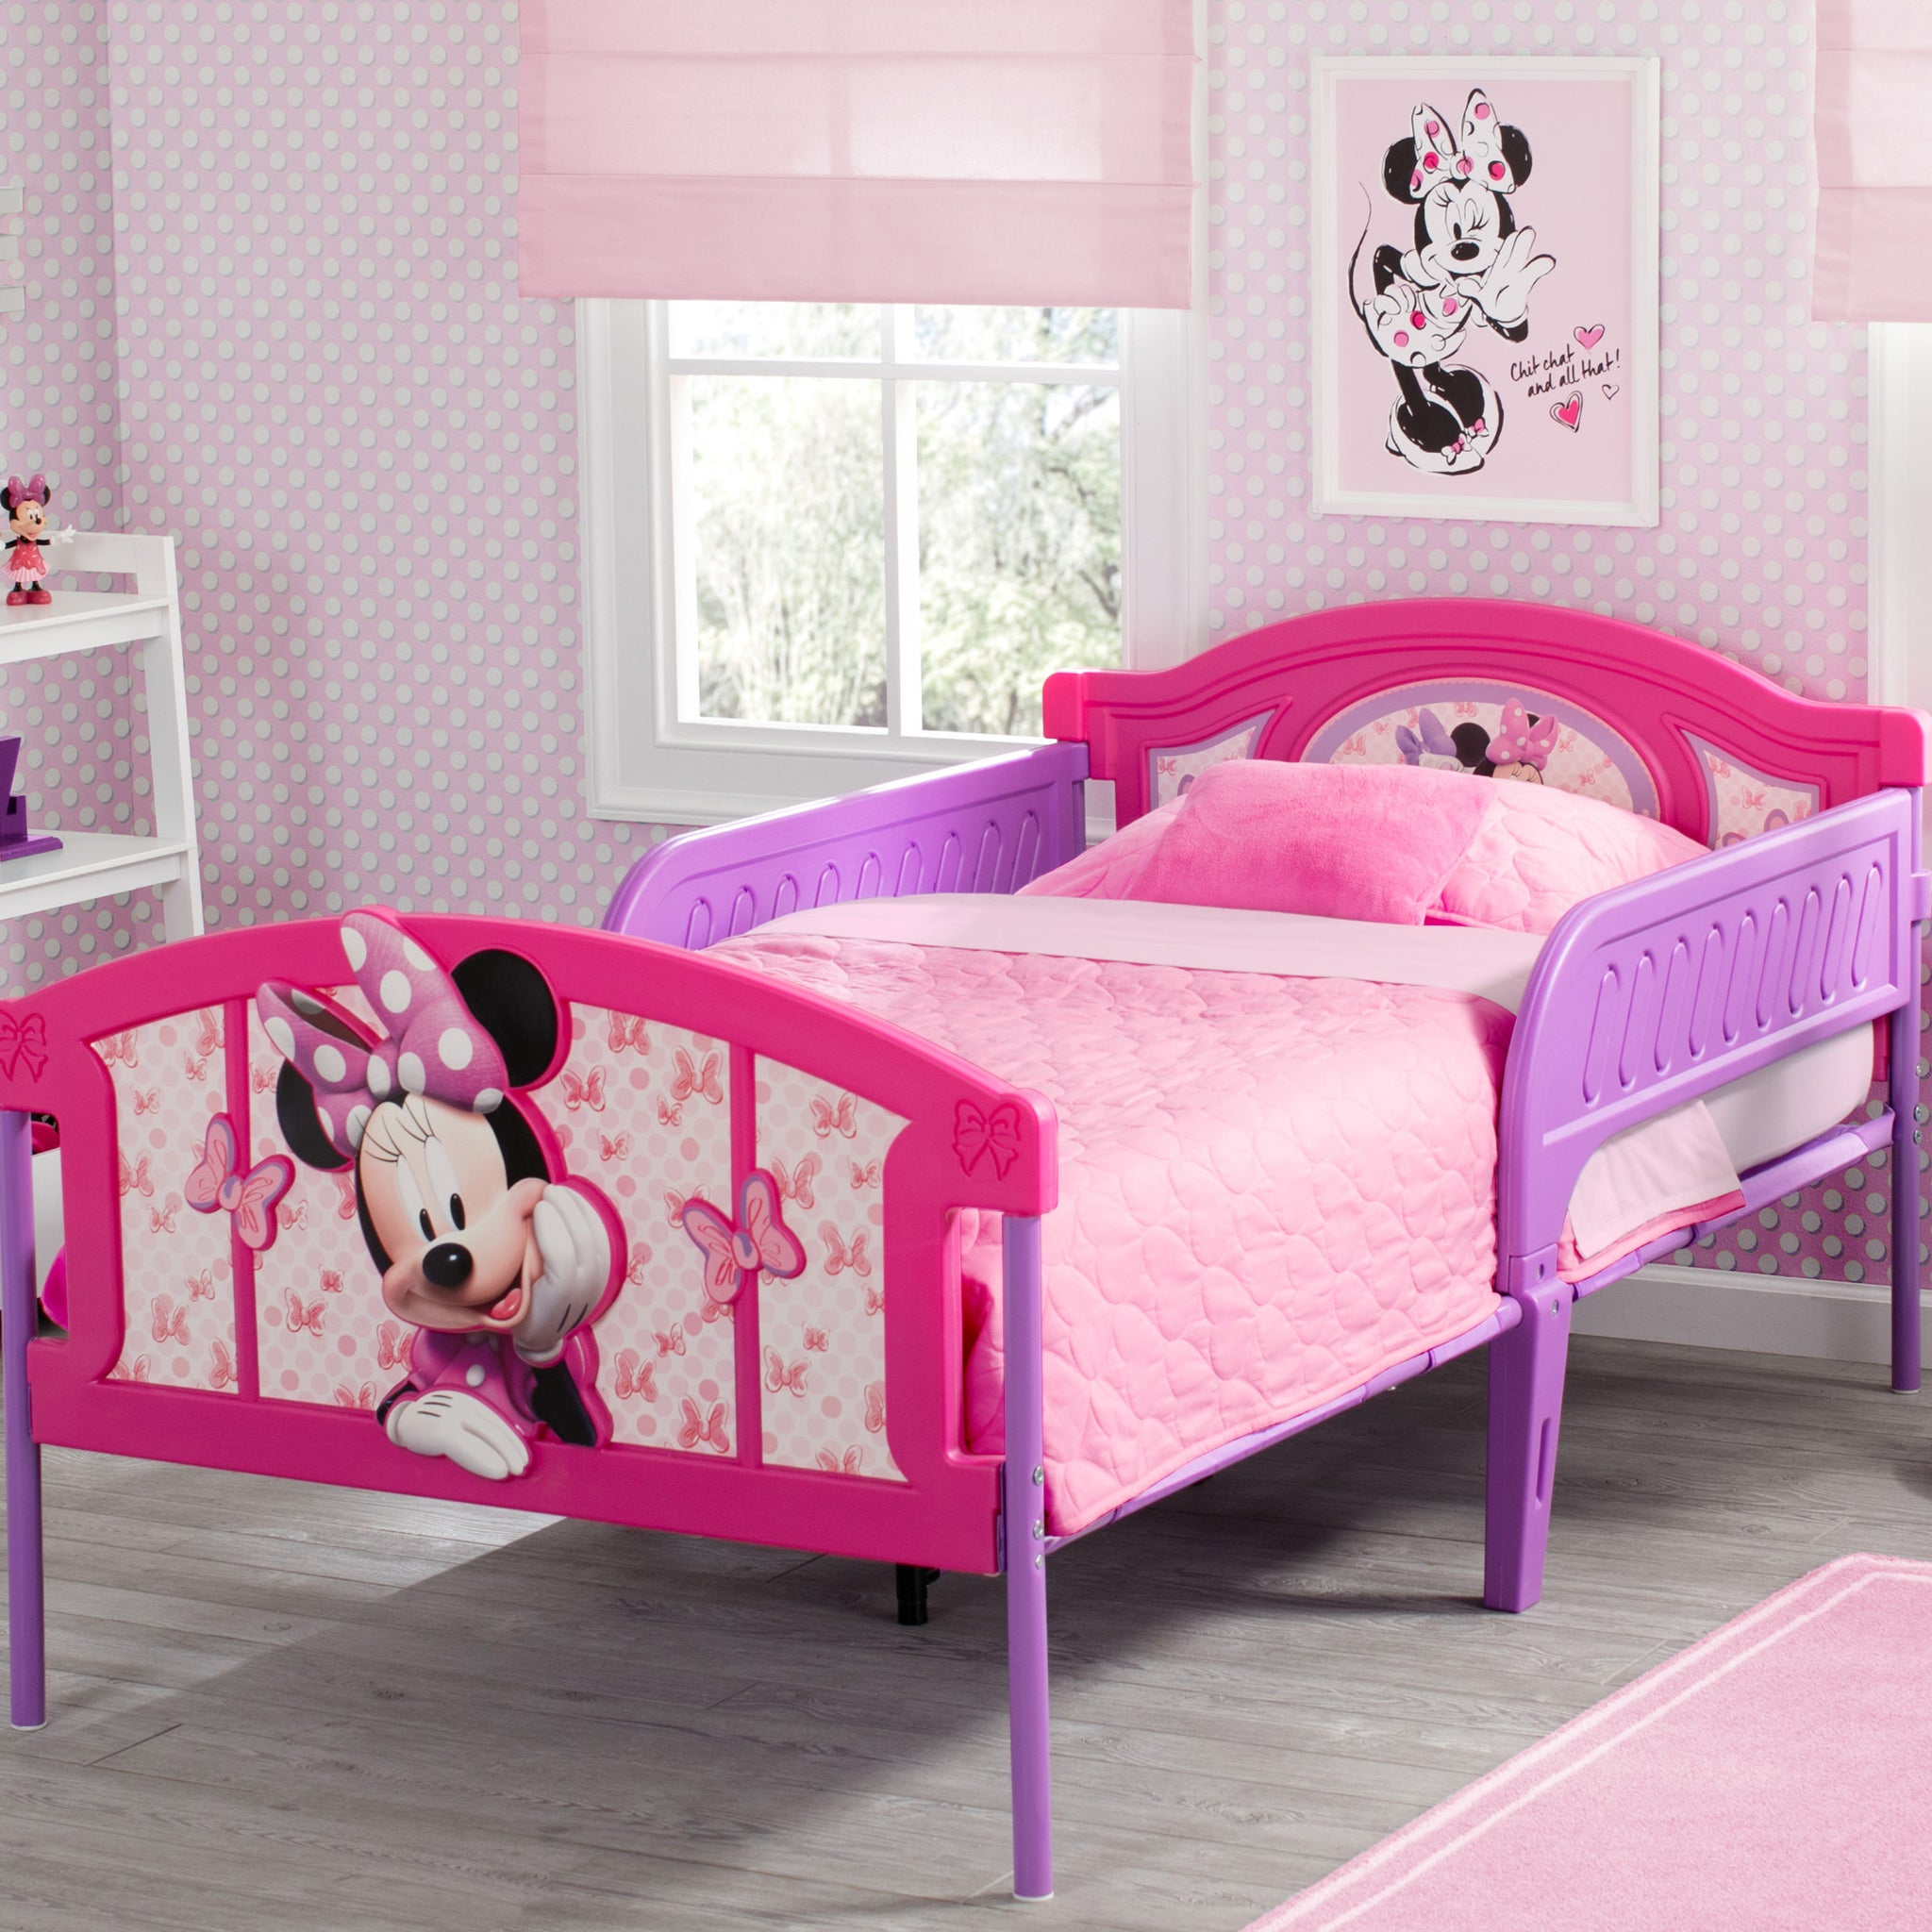 Minnie Mouse Plastic 3D Twin Bed